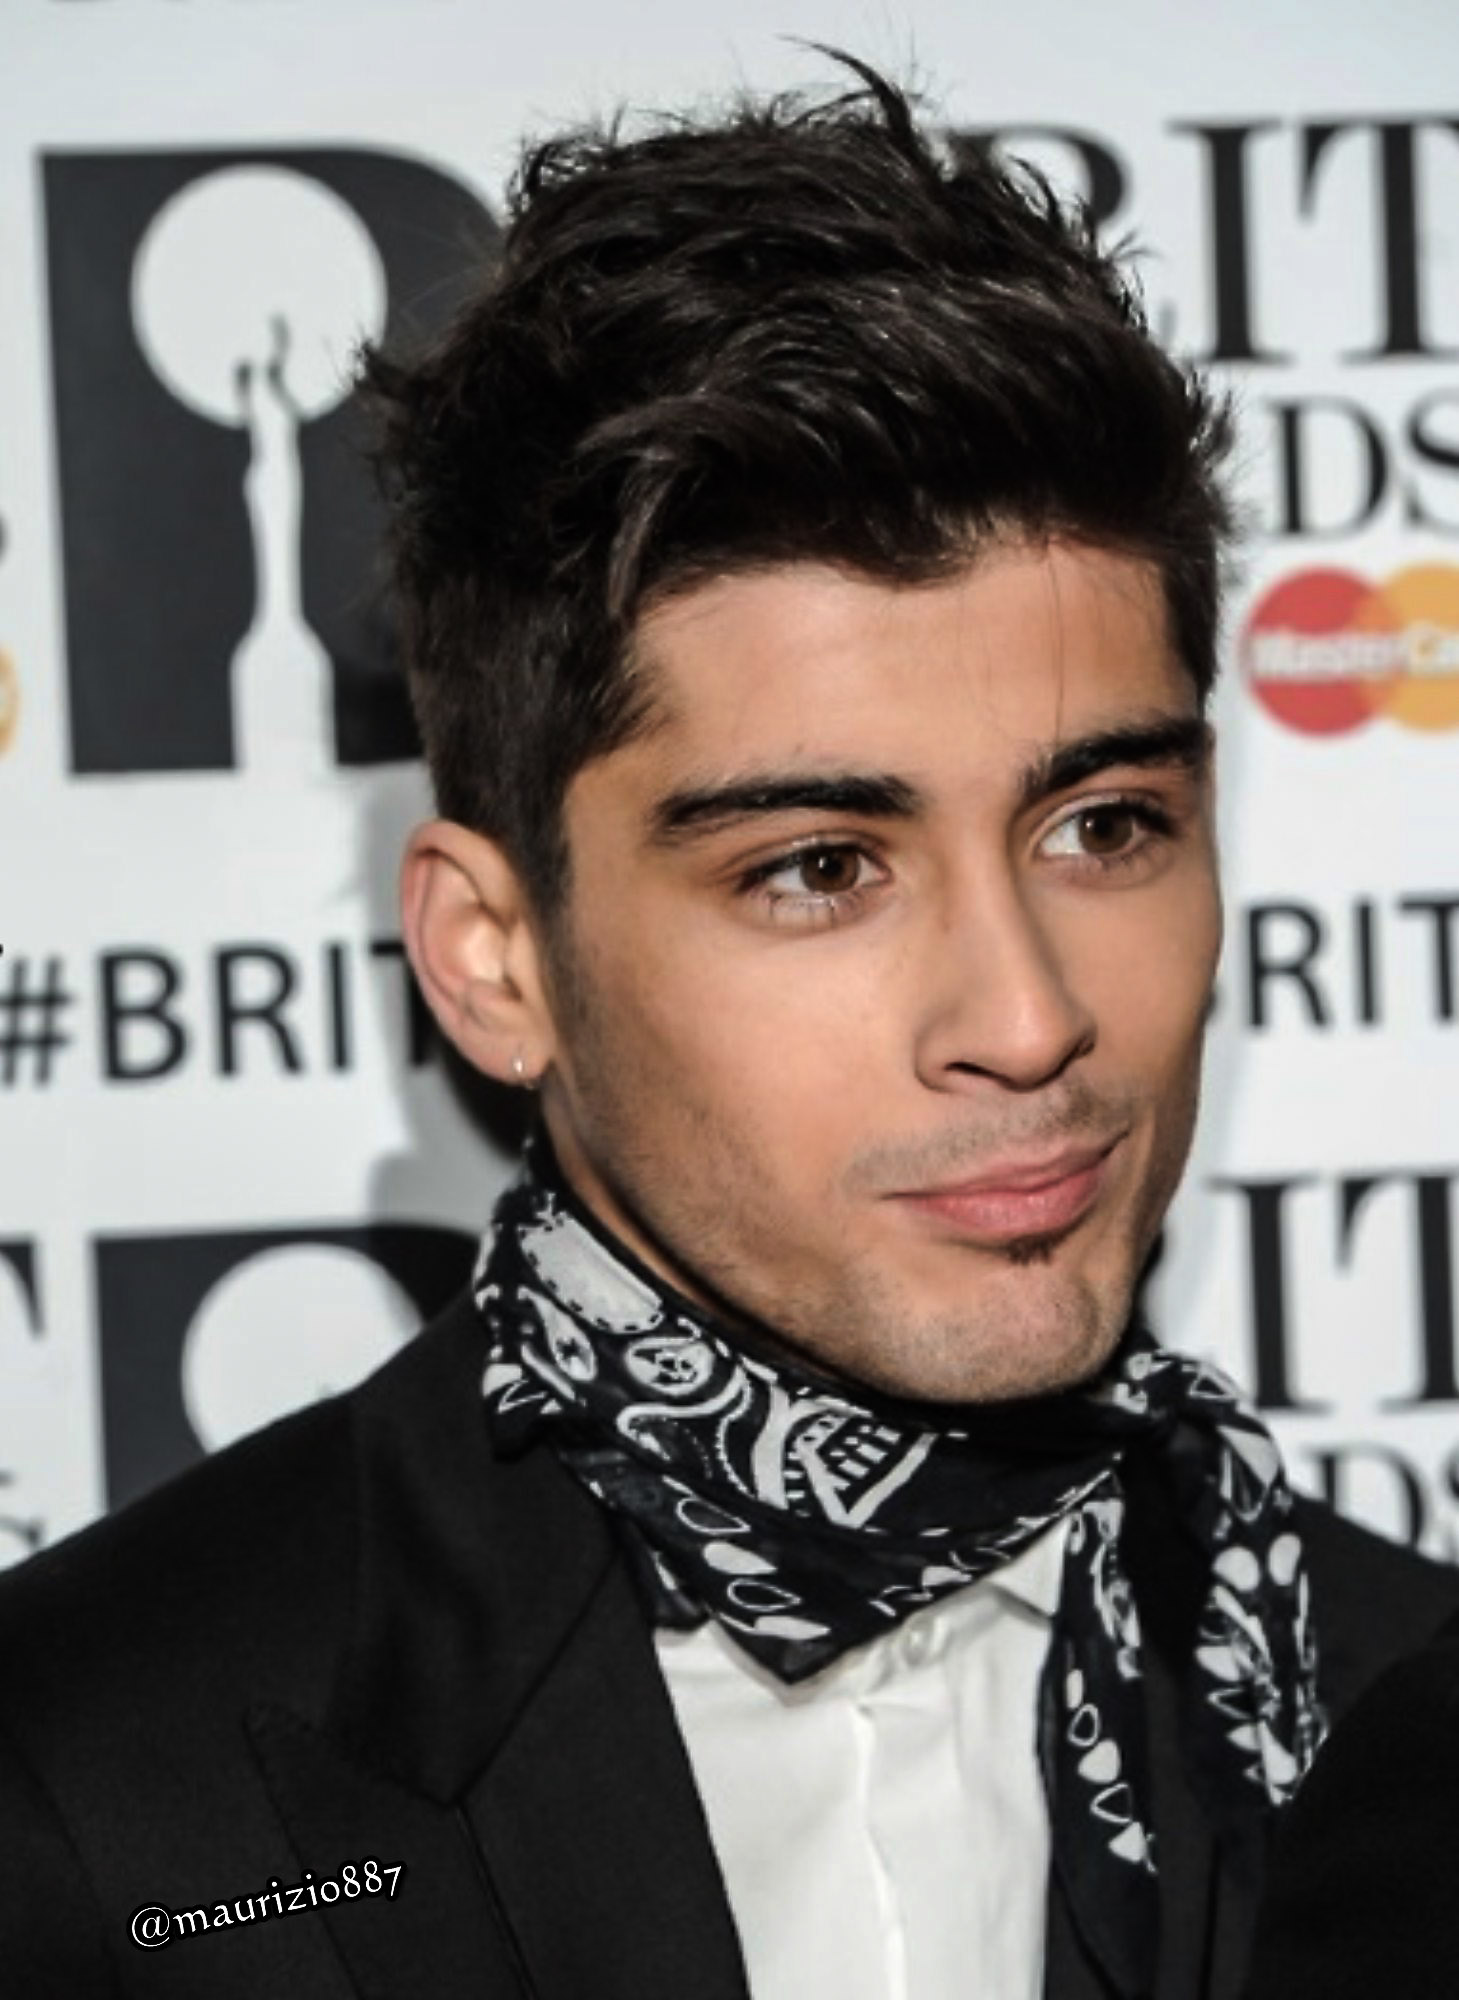 One direction images zayn malik 2014 hd wallpaper and background